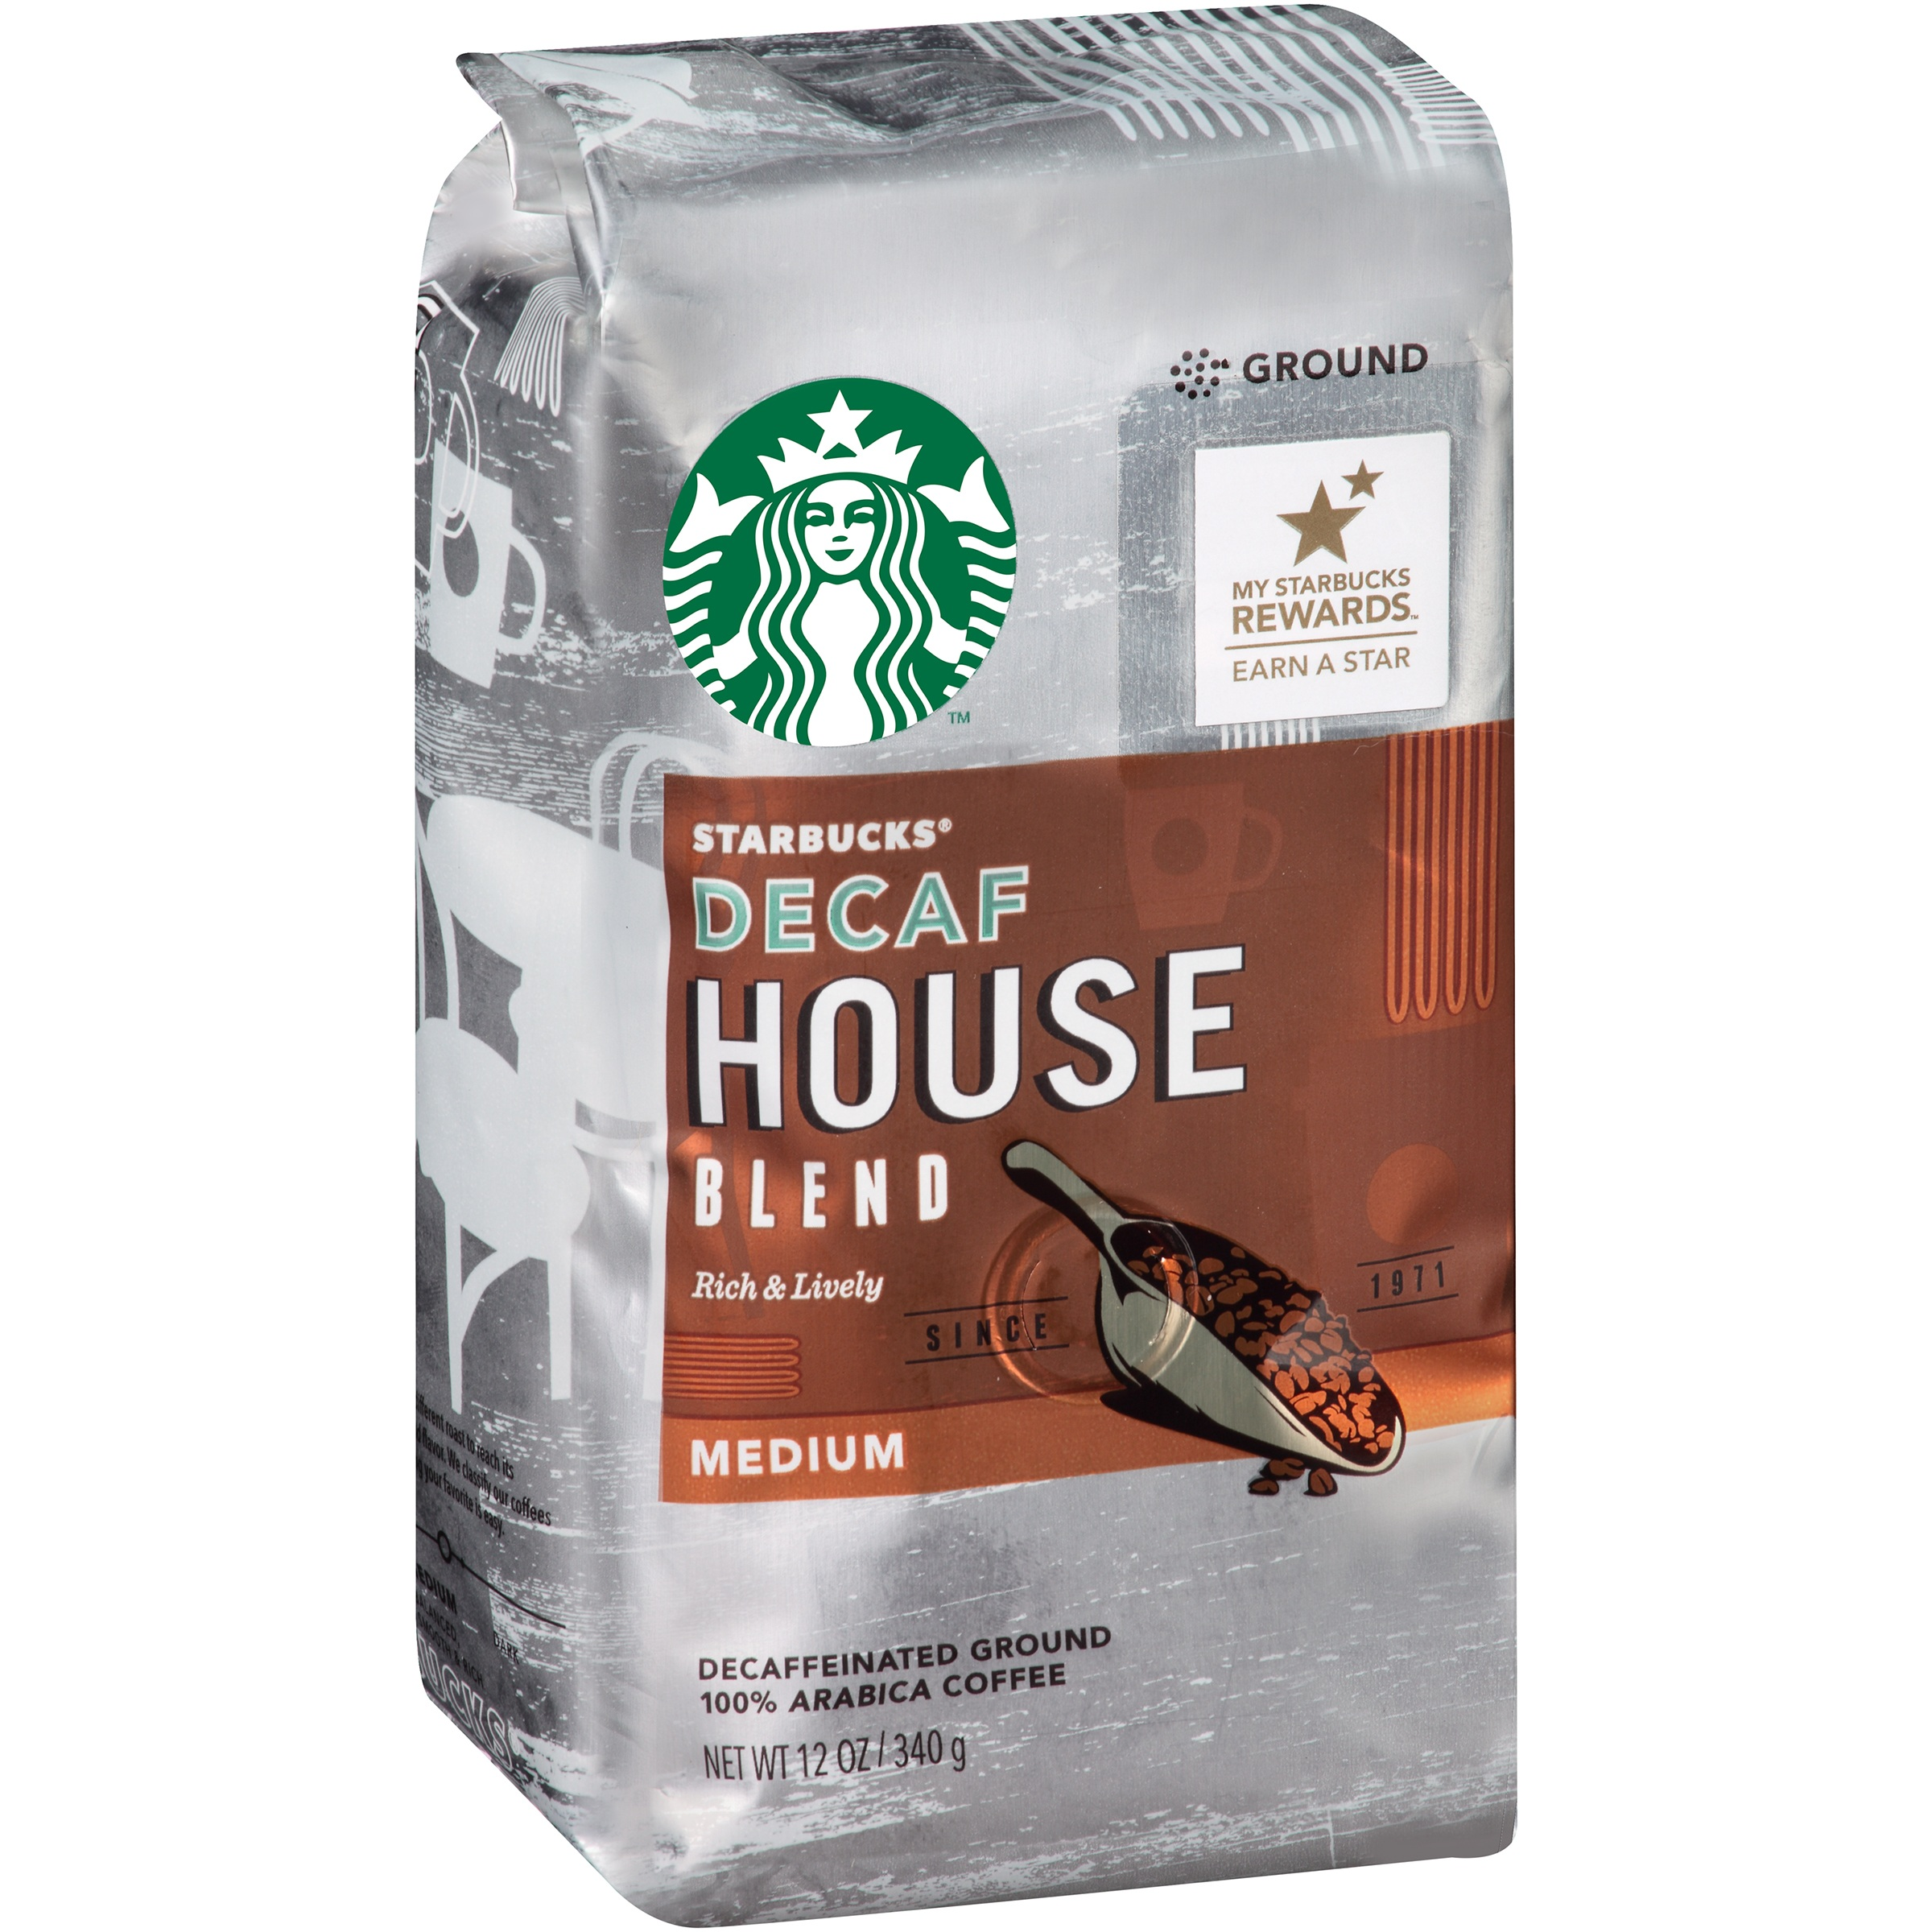 Starbucks Decaf House Blend Ground Coffee, 12 oz by STARBUCKS COFFEE COMPANY